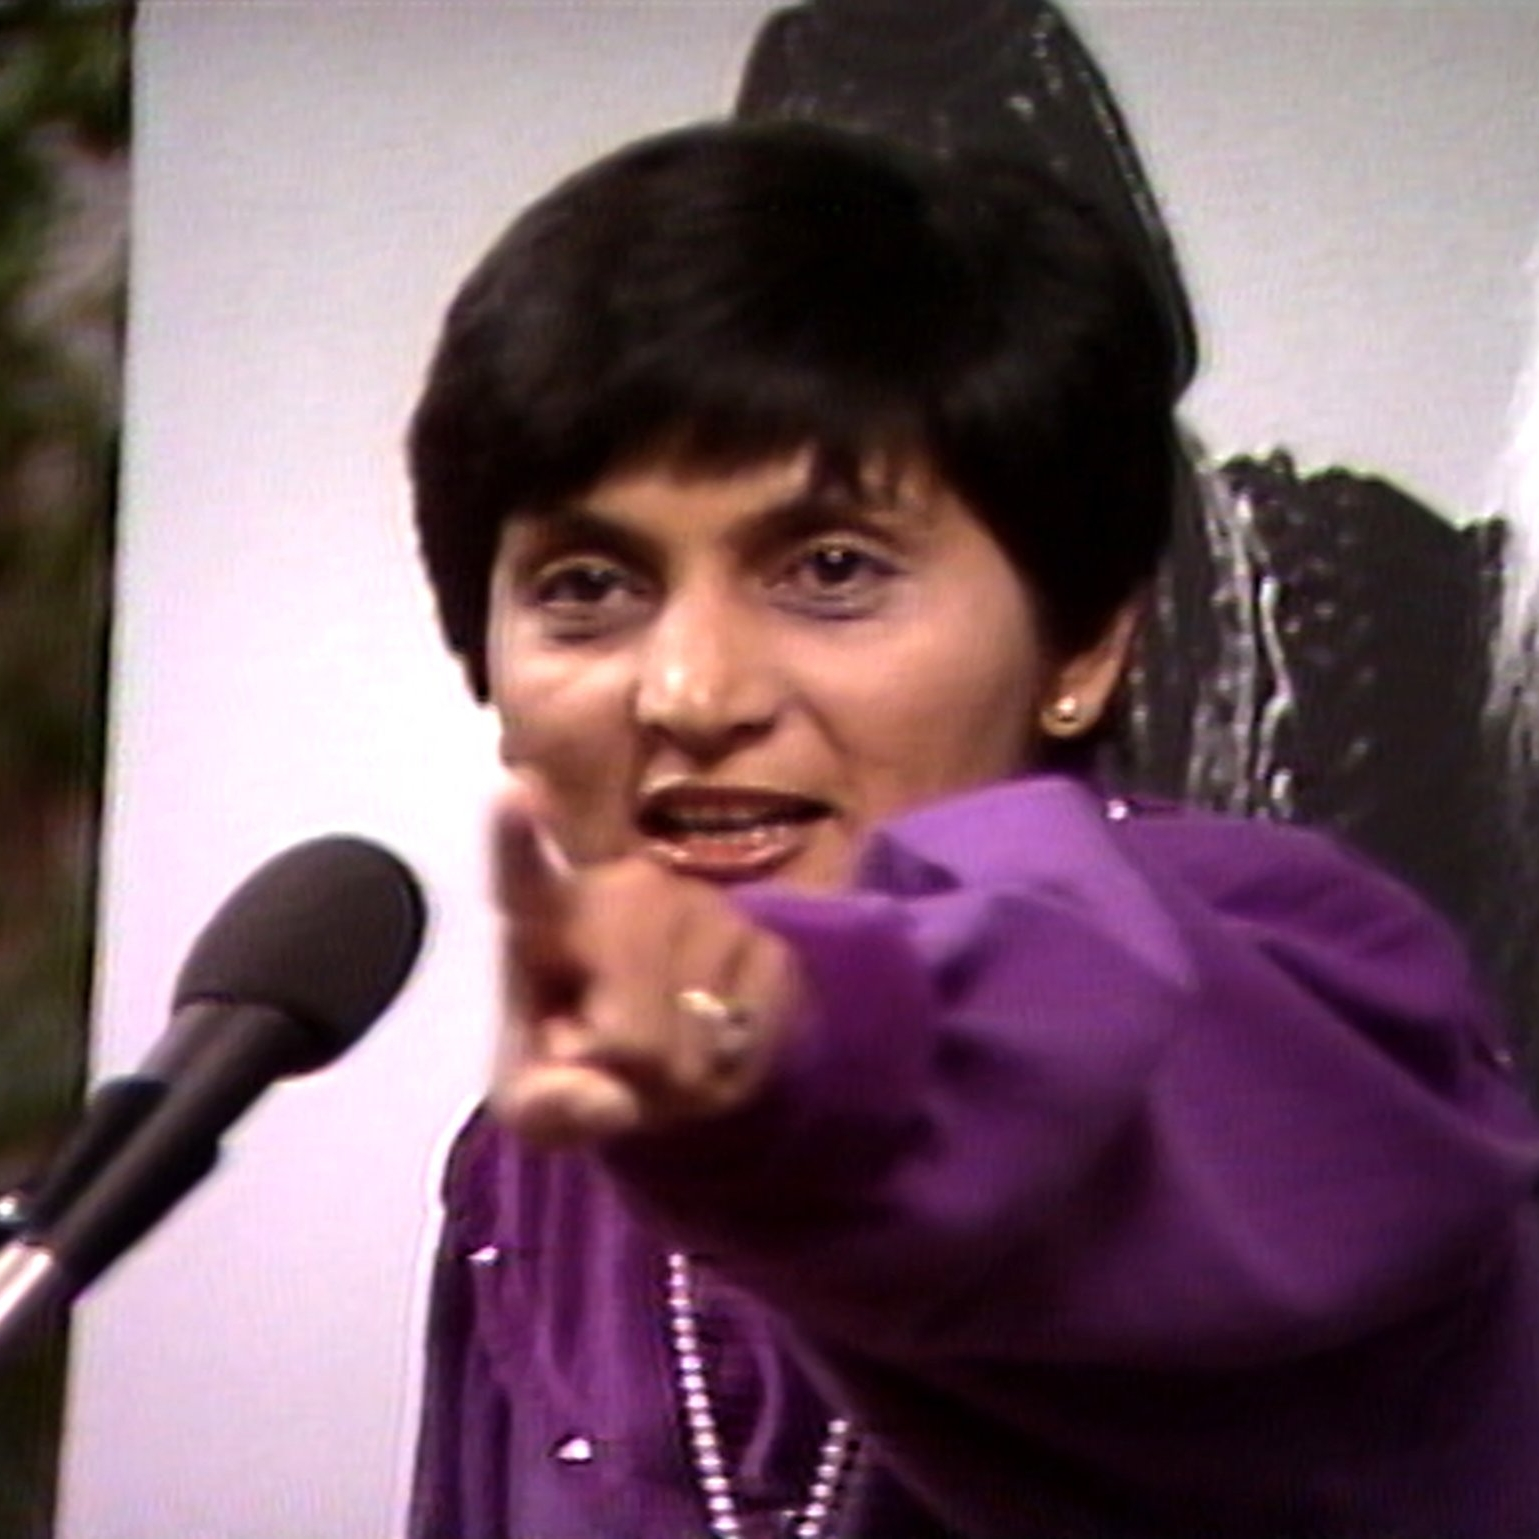 Is Wild Wild Country Real? - IMDB: Locals were astounded and horrified by the influx of 7,000 free-love-worshipping spiritual seekers in their tiny town - of all the places in the world: Antelope, Or? - and it only gets weirder as the story goes on.(2 April 2018)